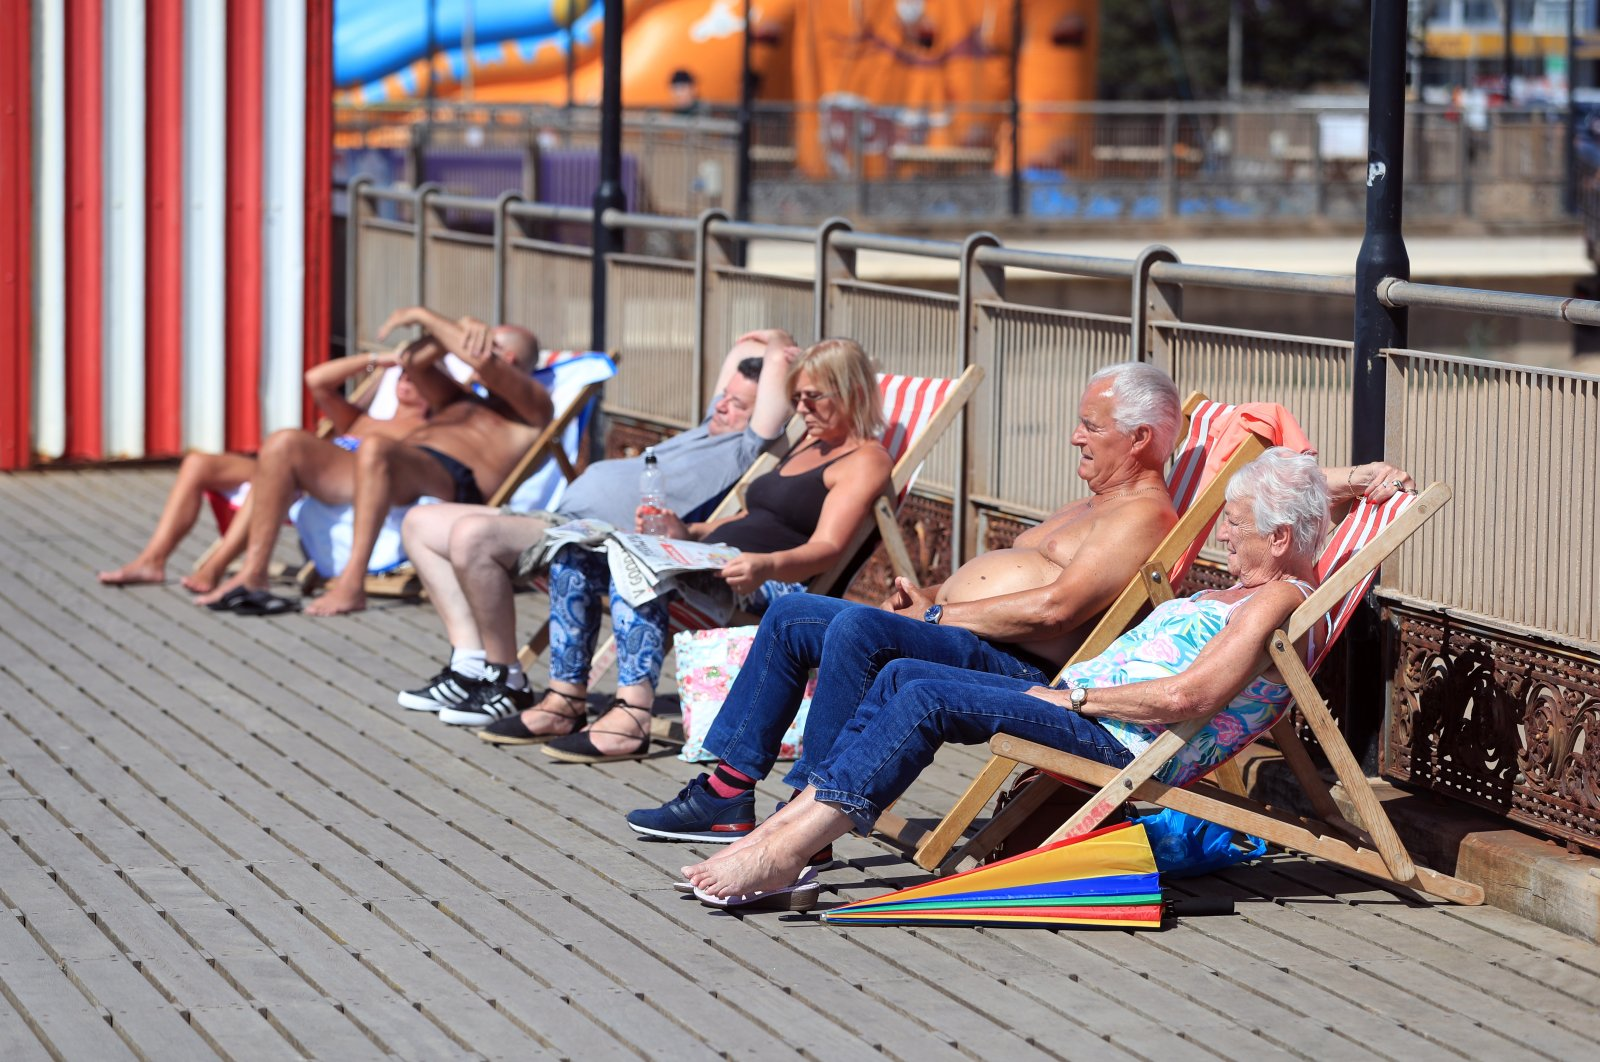 People sunbathe in Skegness, a seaside town in Lincolnshire in England on Aug. 7, 2020. (PA via Reuters)